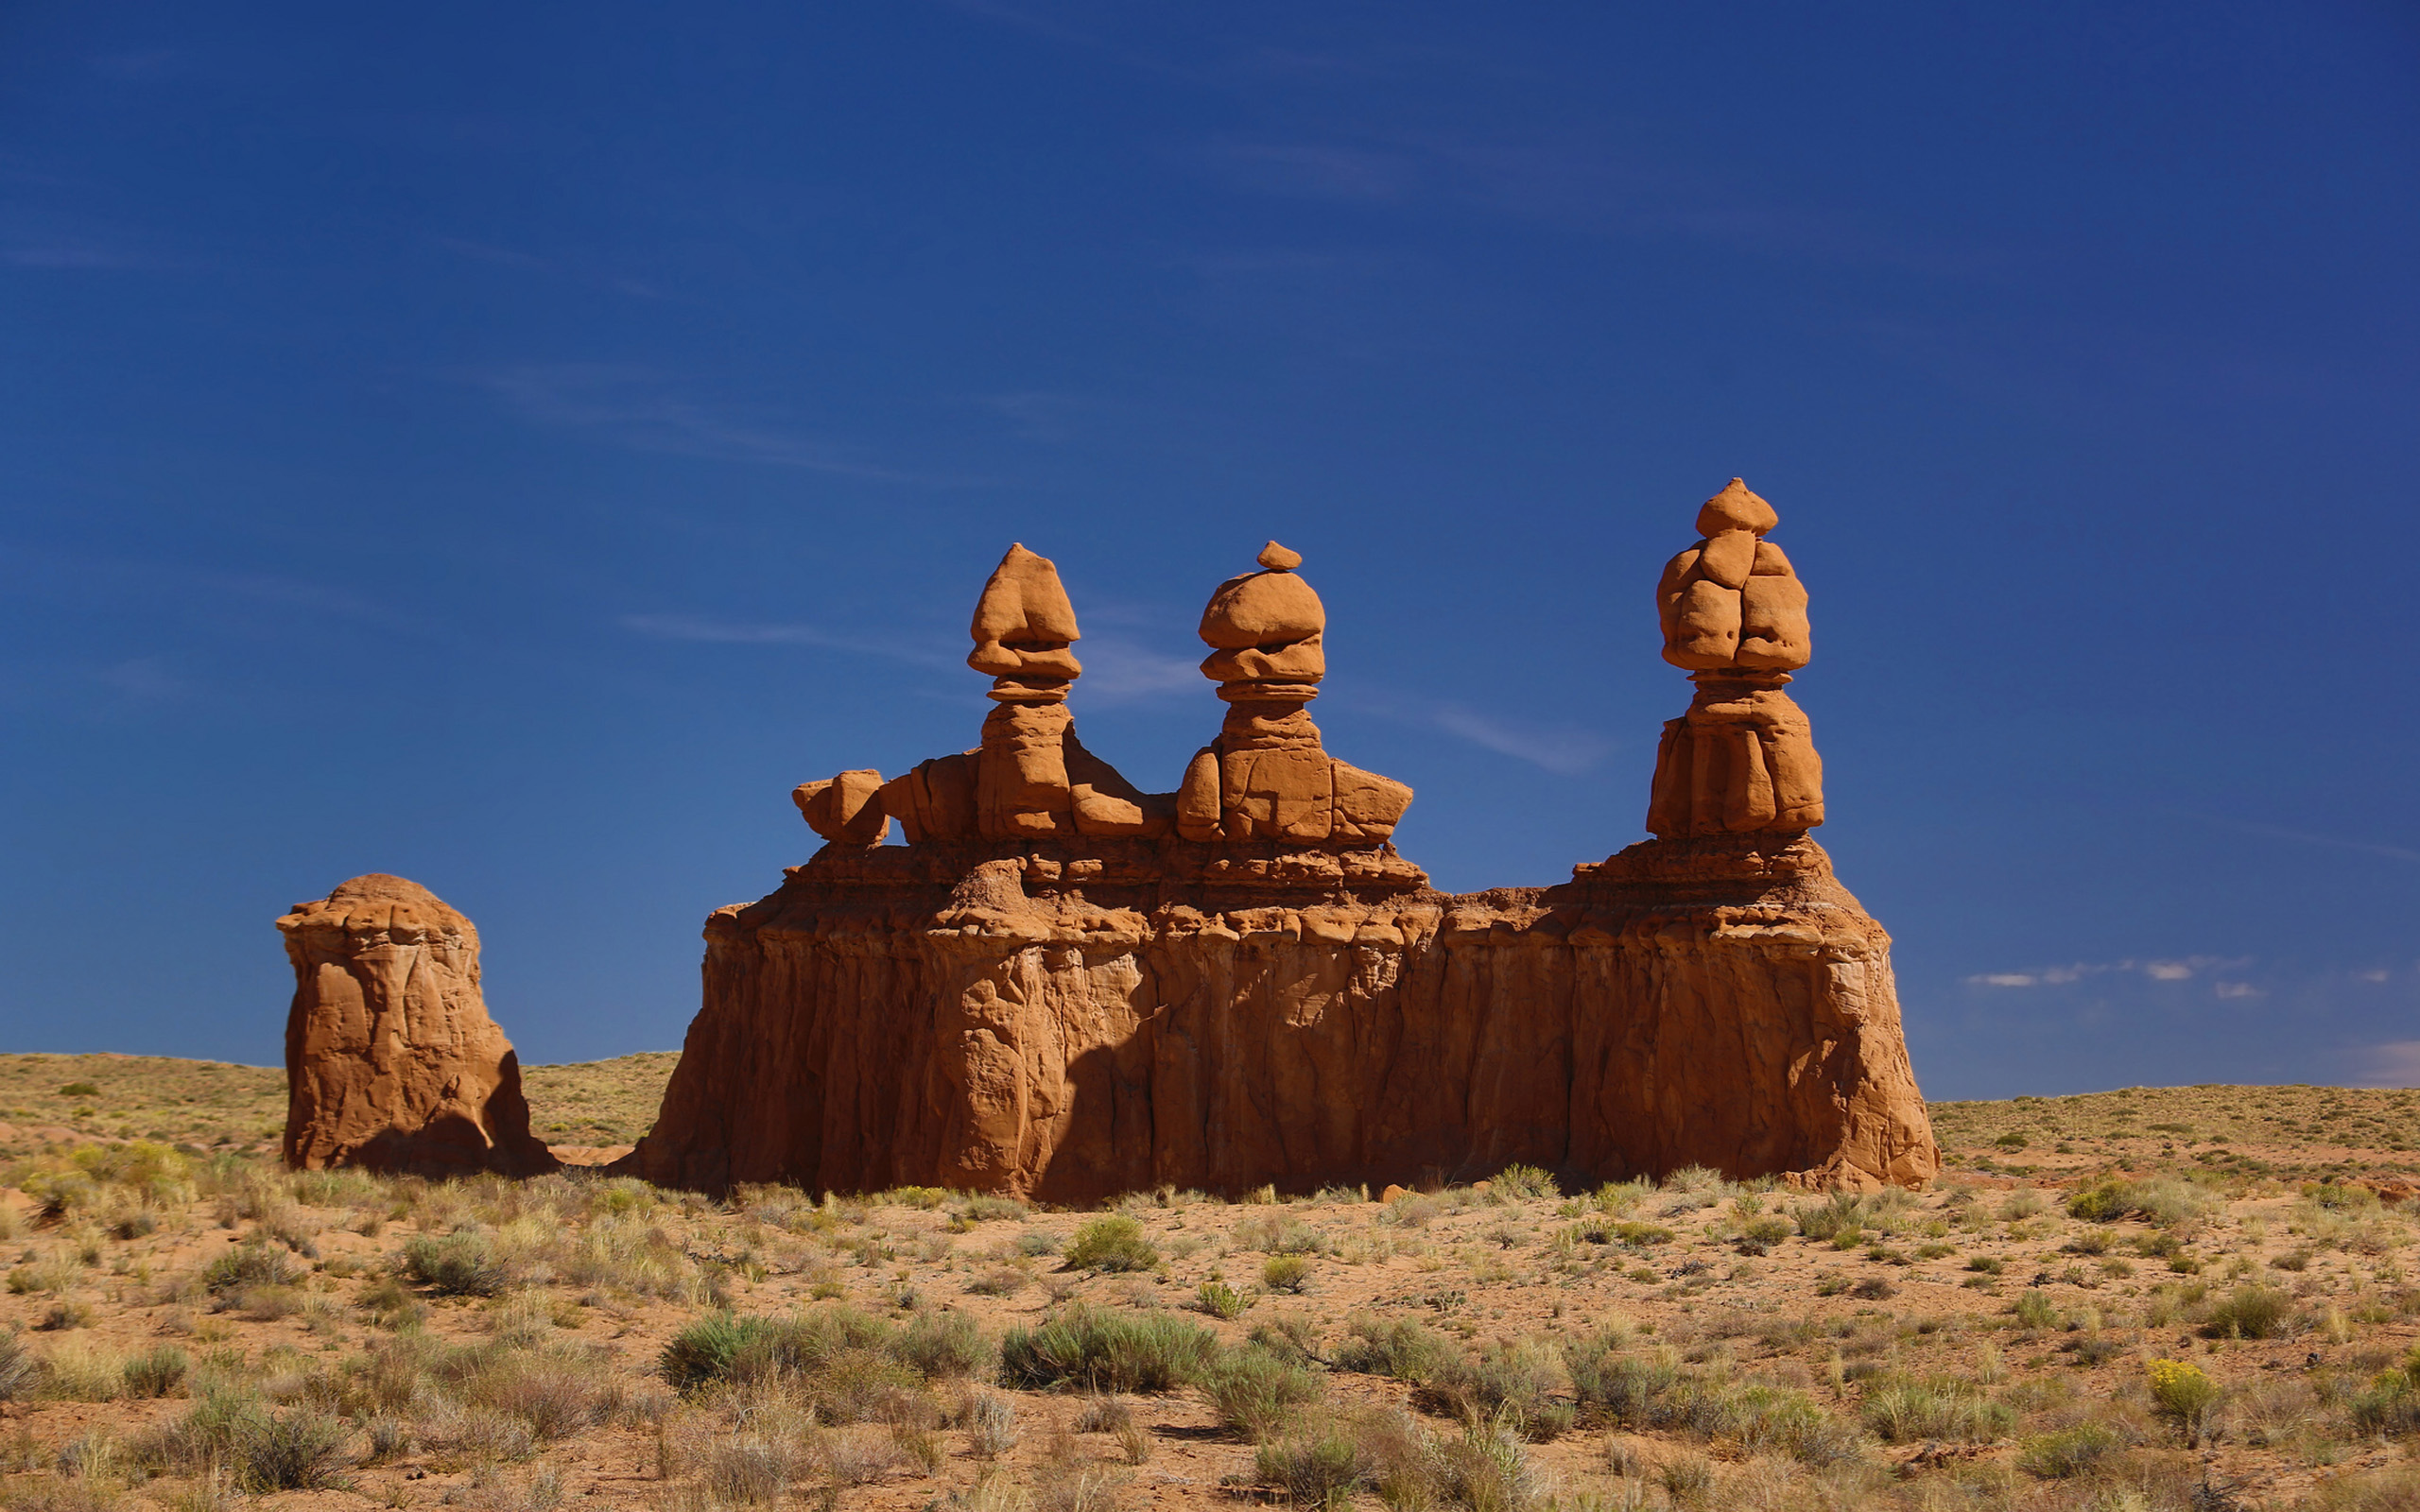 Hd Wallpaper For Mobile 1920x1080 Cars Stone Figures Goblin Valley State Park Utah Usa Desktop Hd